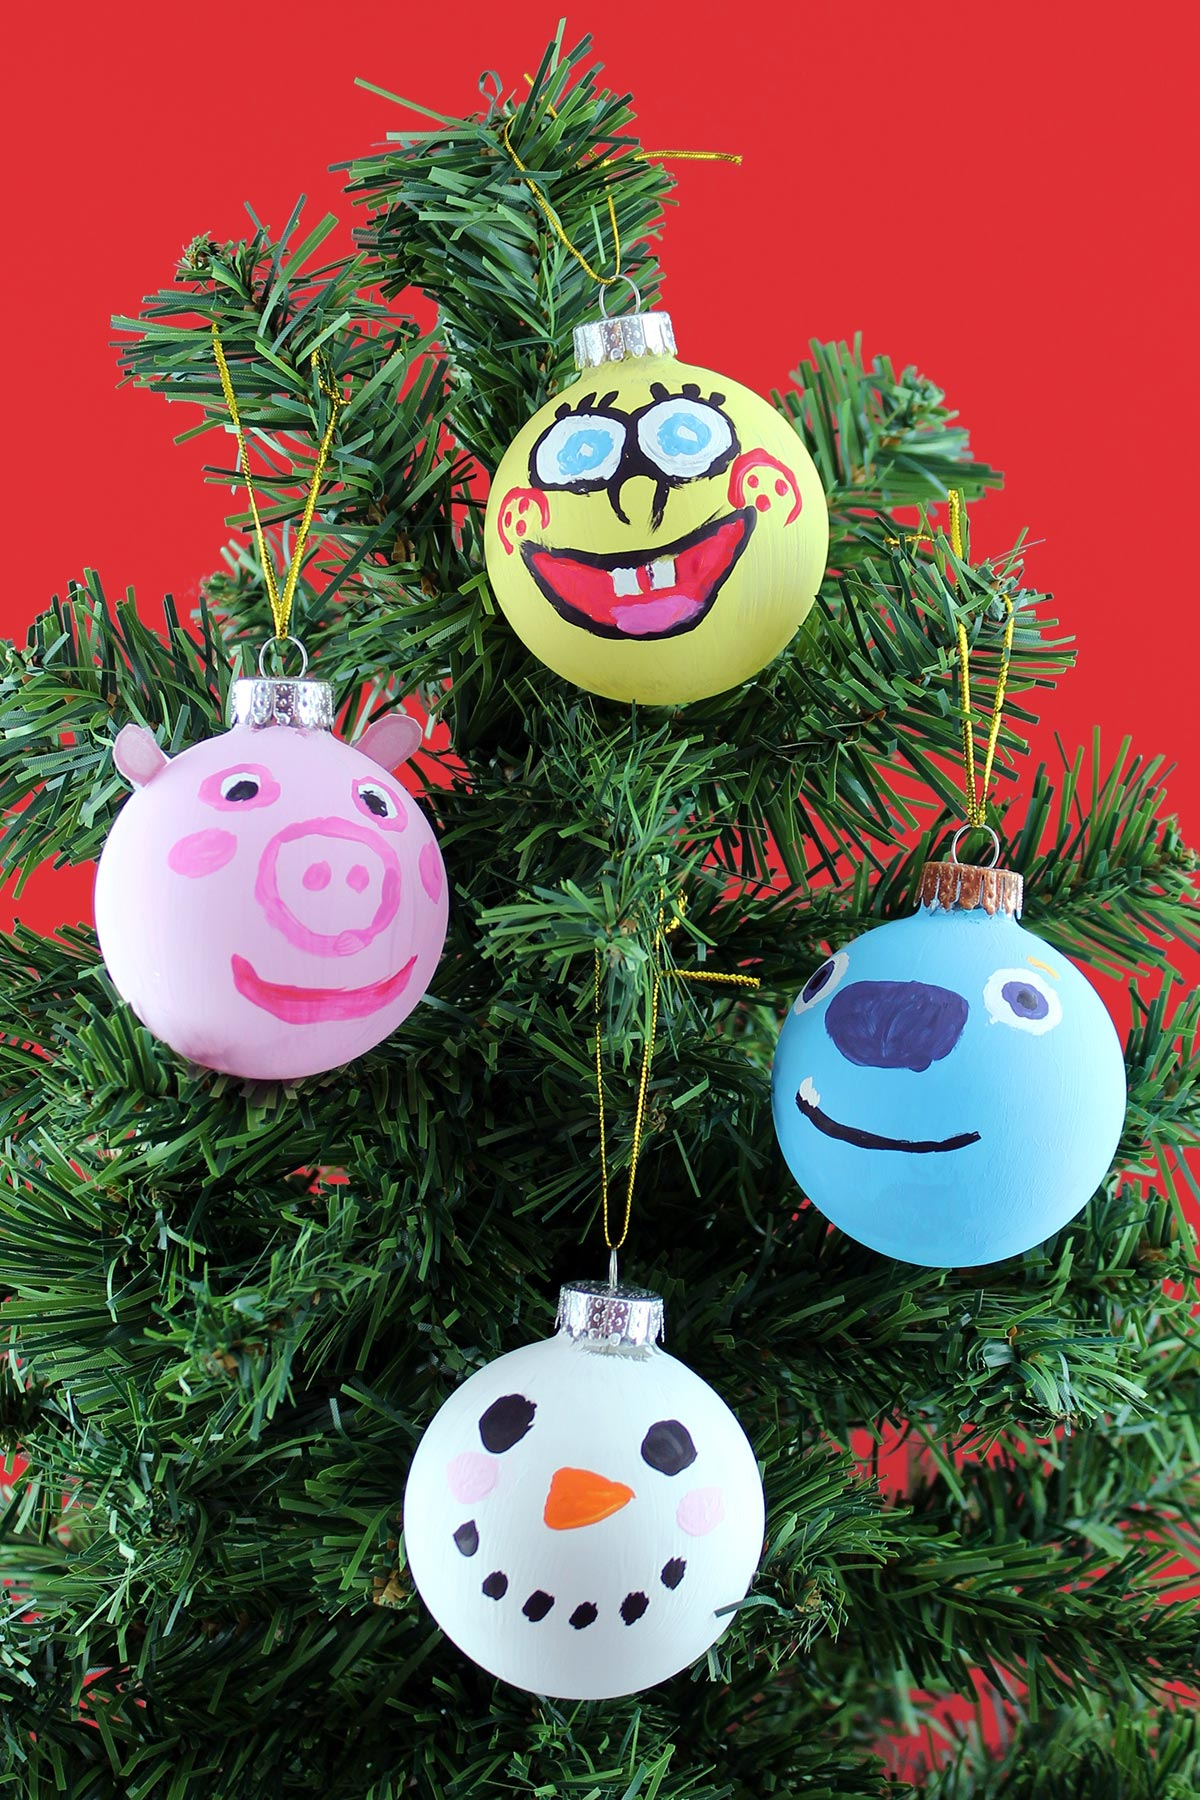 The Nickelodeon Family Gets Crafty for Christmas ...